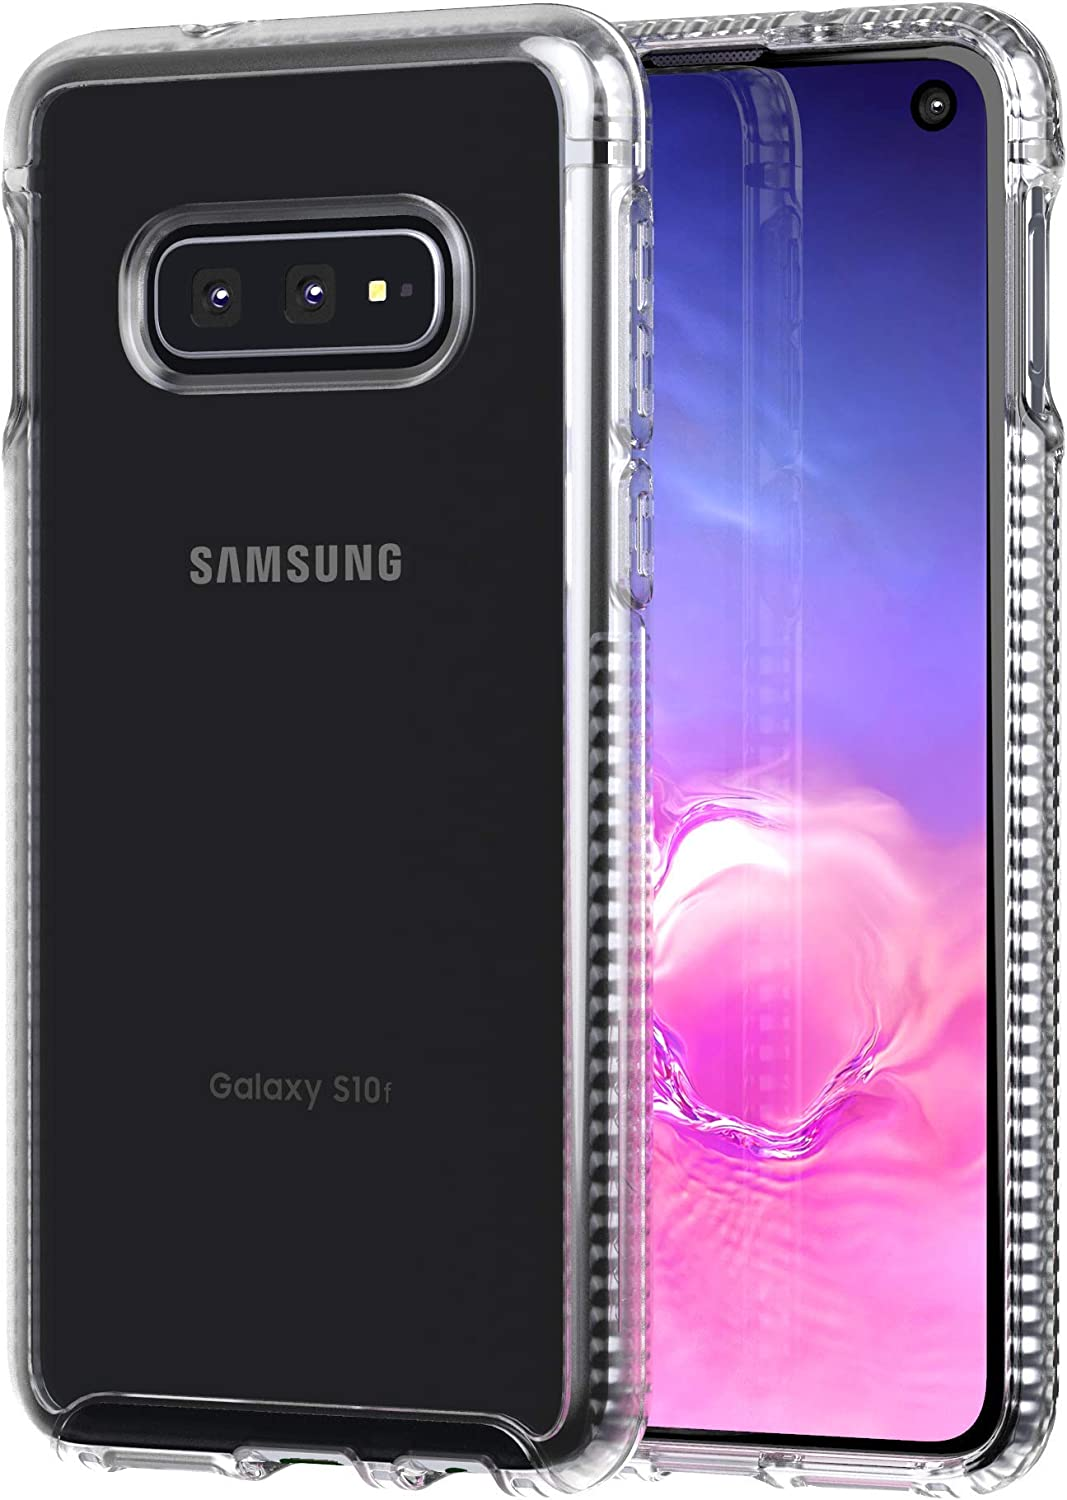 tech21 Pure Clear for Samsung Galaxy S10e - Clear - Mobile Phone Case with Near Perfect Transparency - Ultra-Thin Cellphone Case - Phone Casing for Drop Protection of 6.6FT or 2M